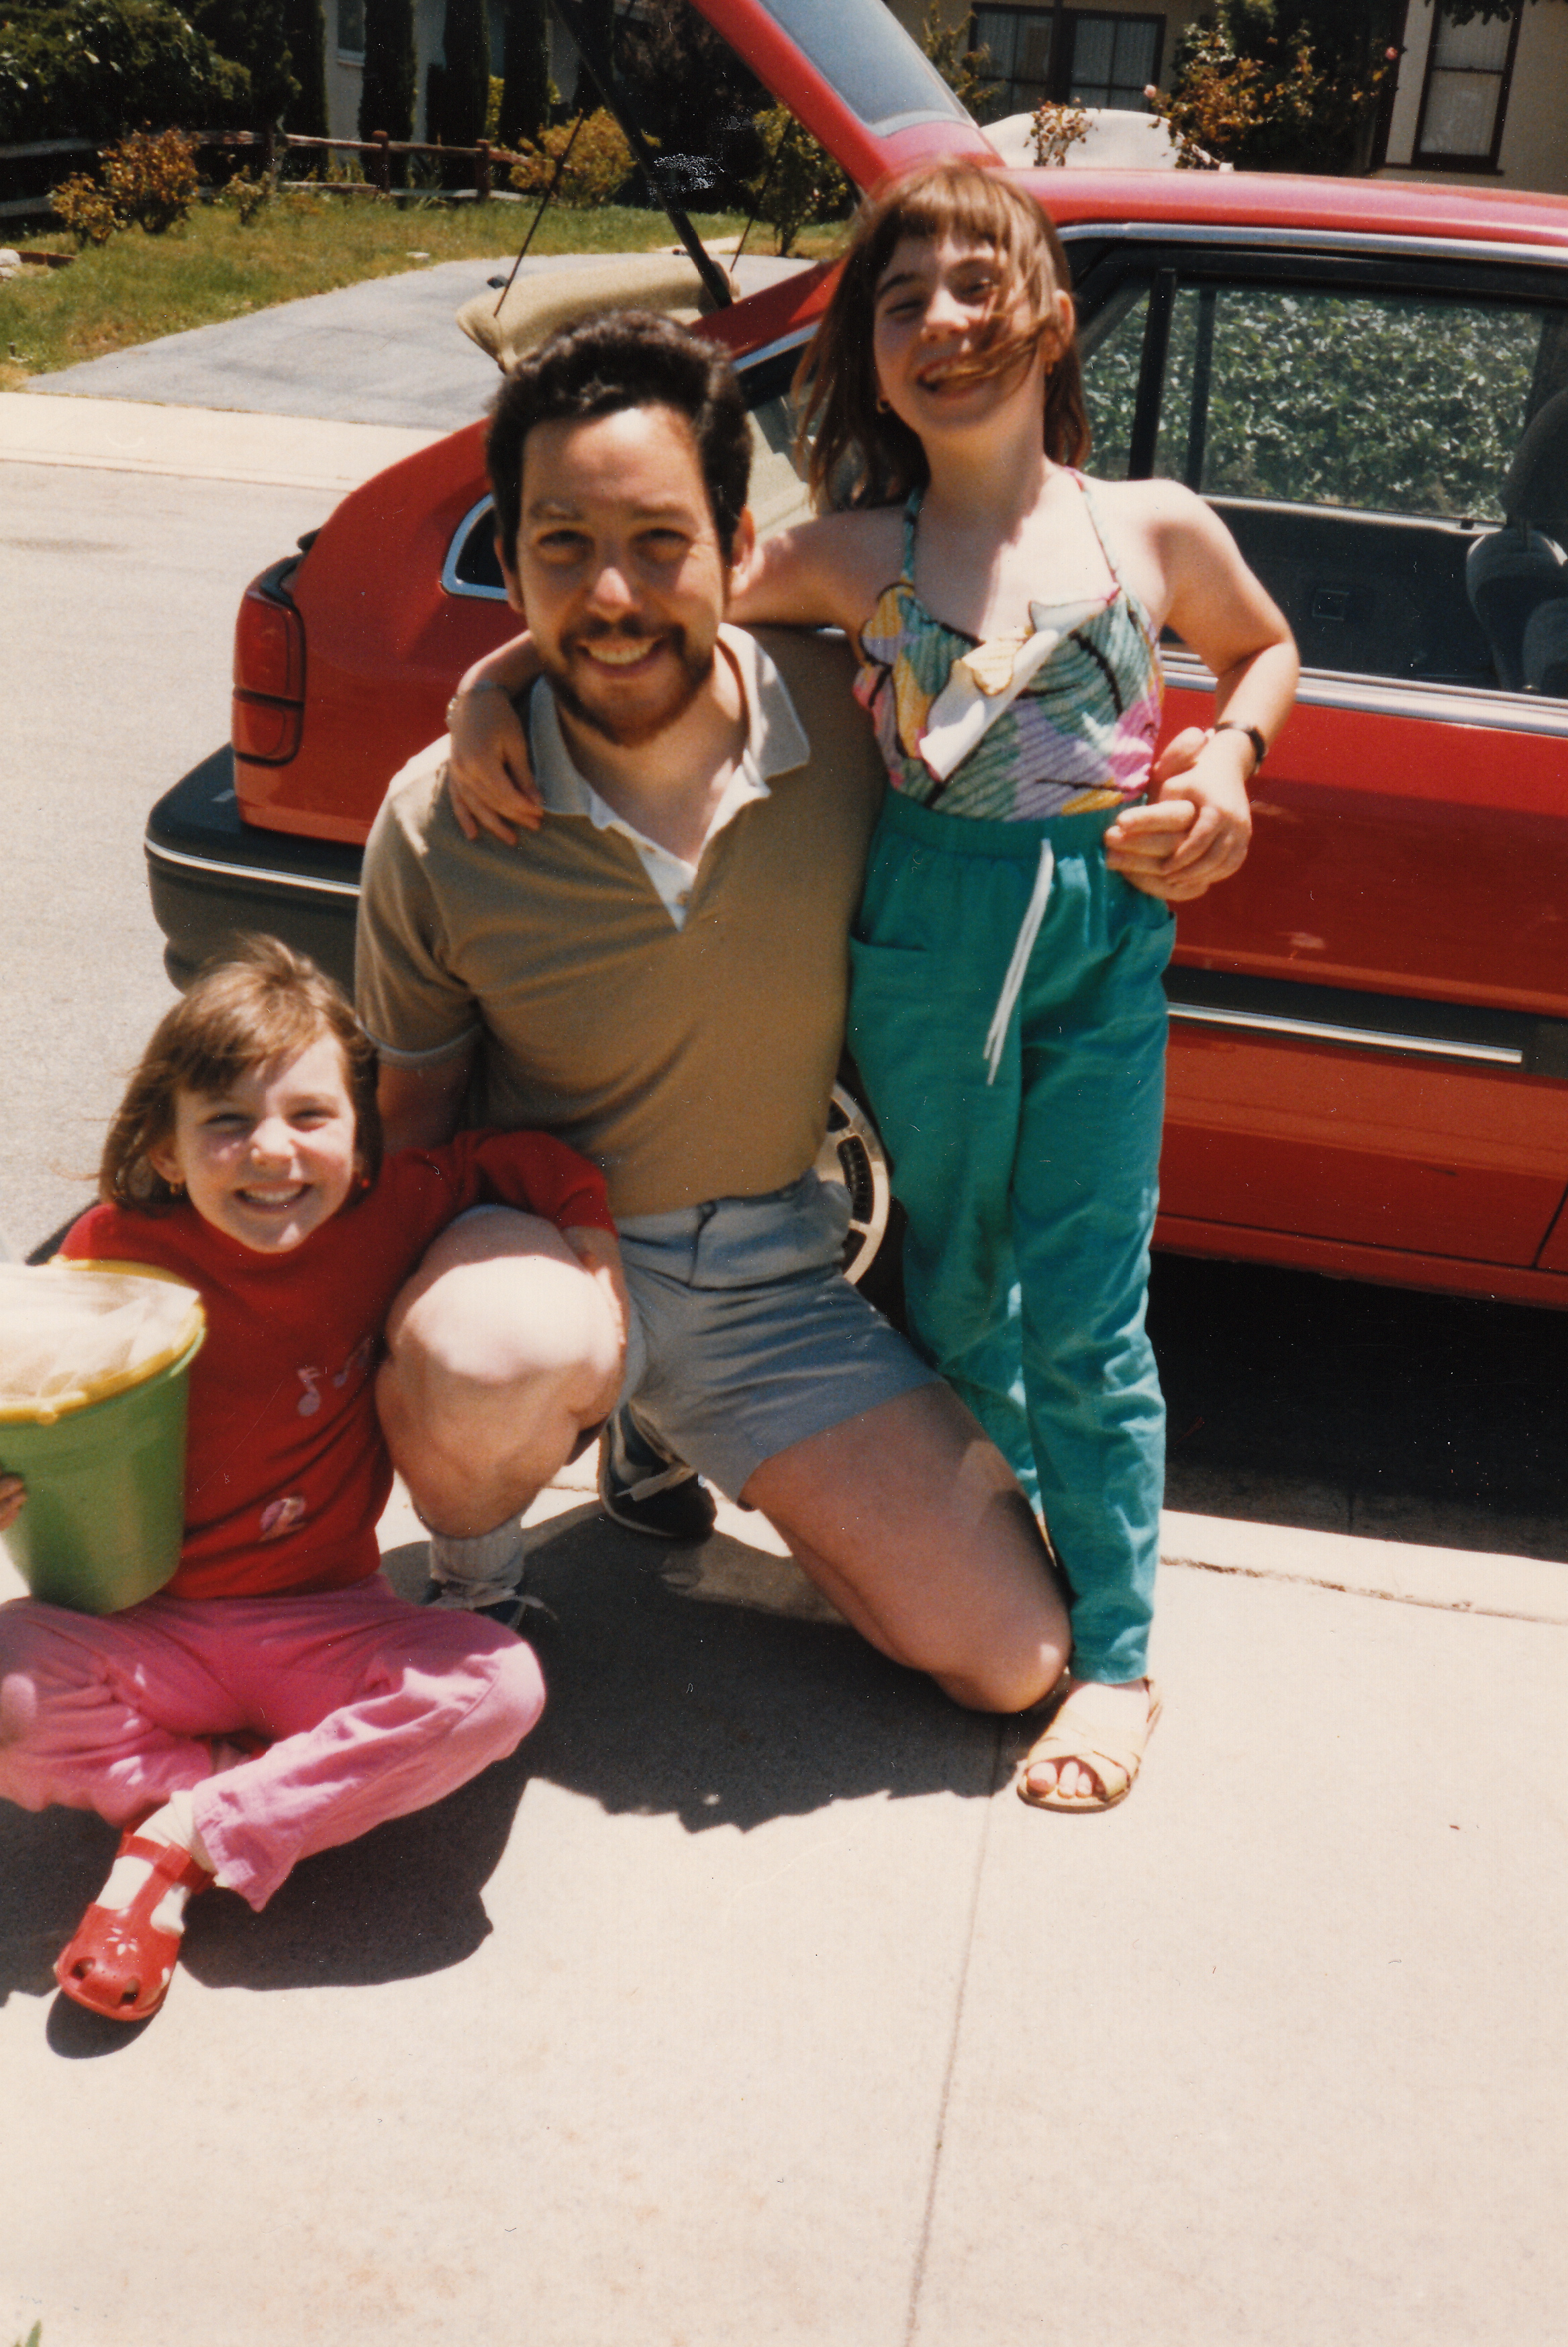 Figure 20.6. Alan with his daughters Sarah and Hannah, Los Angeles, 1988. Credit: Personal collection of Alan M. Wald.